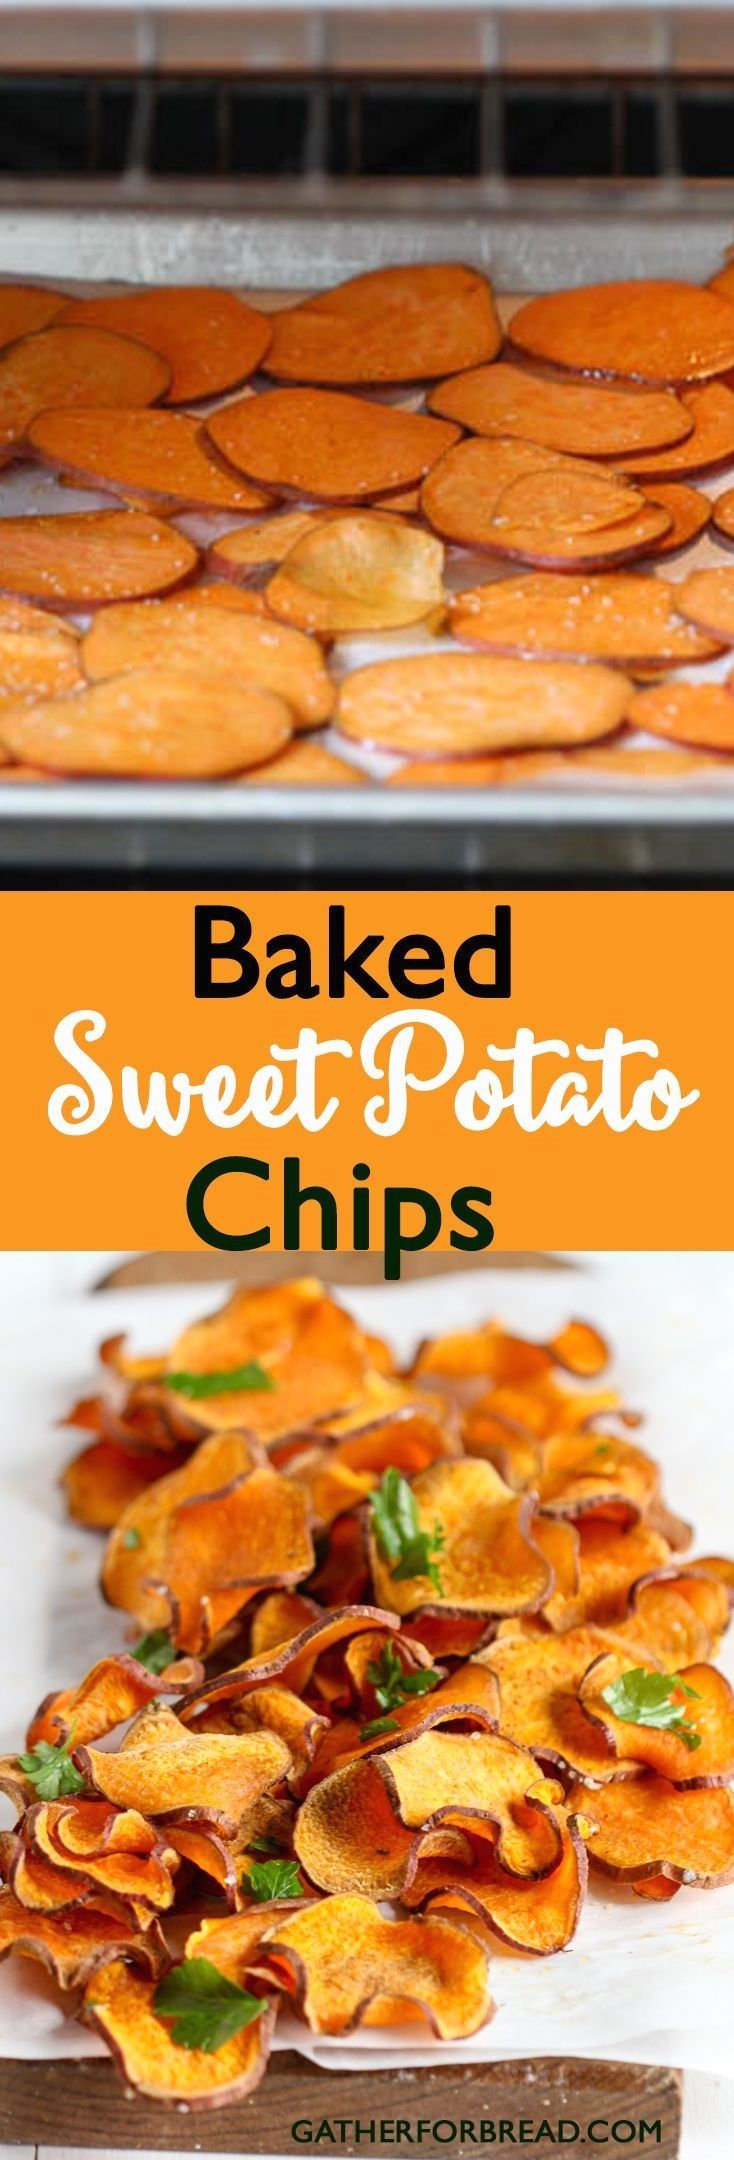 Baked Sweet Potato Chips - Gluten Free Paleo Whole 30 Healthy - These tasty chips will satisfy your snack cravings. So good you'll want them all the time!